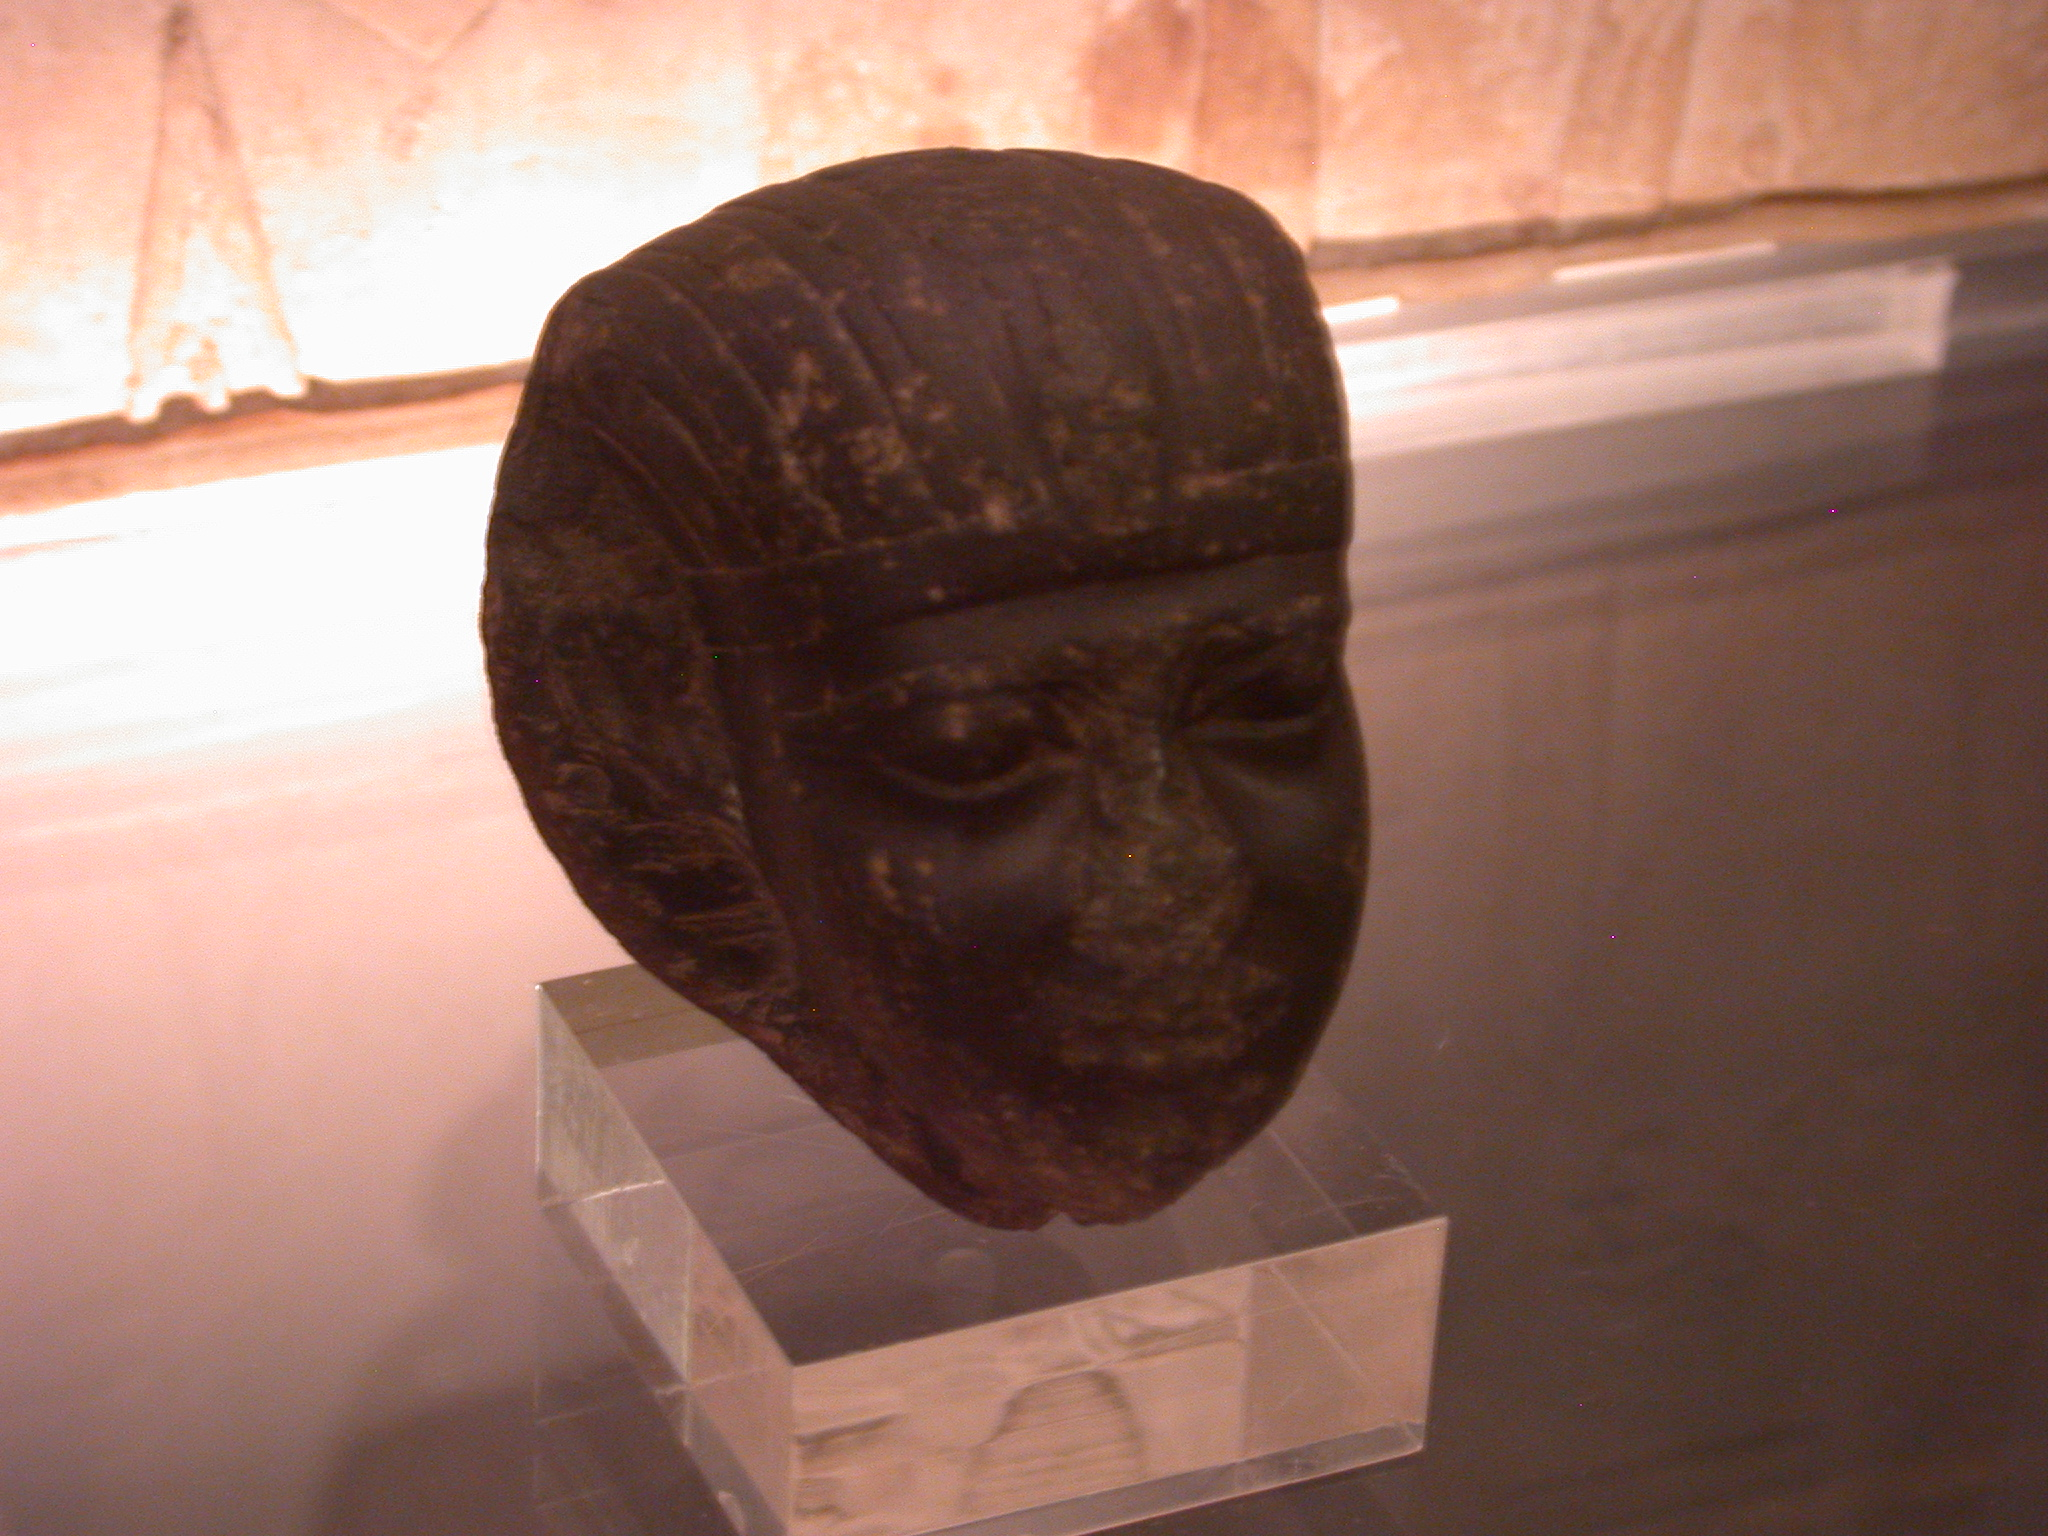 Archaized Portrait of Ruler, Basalt Statue, 25th or 26th Dynasty, 746-525 BCE, Egypt, in Fitzwilliam Museum, Cambridge, England